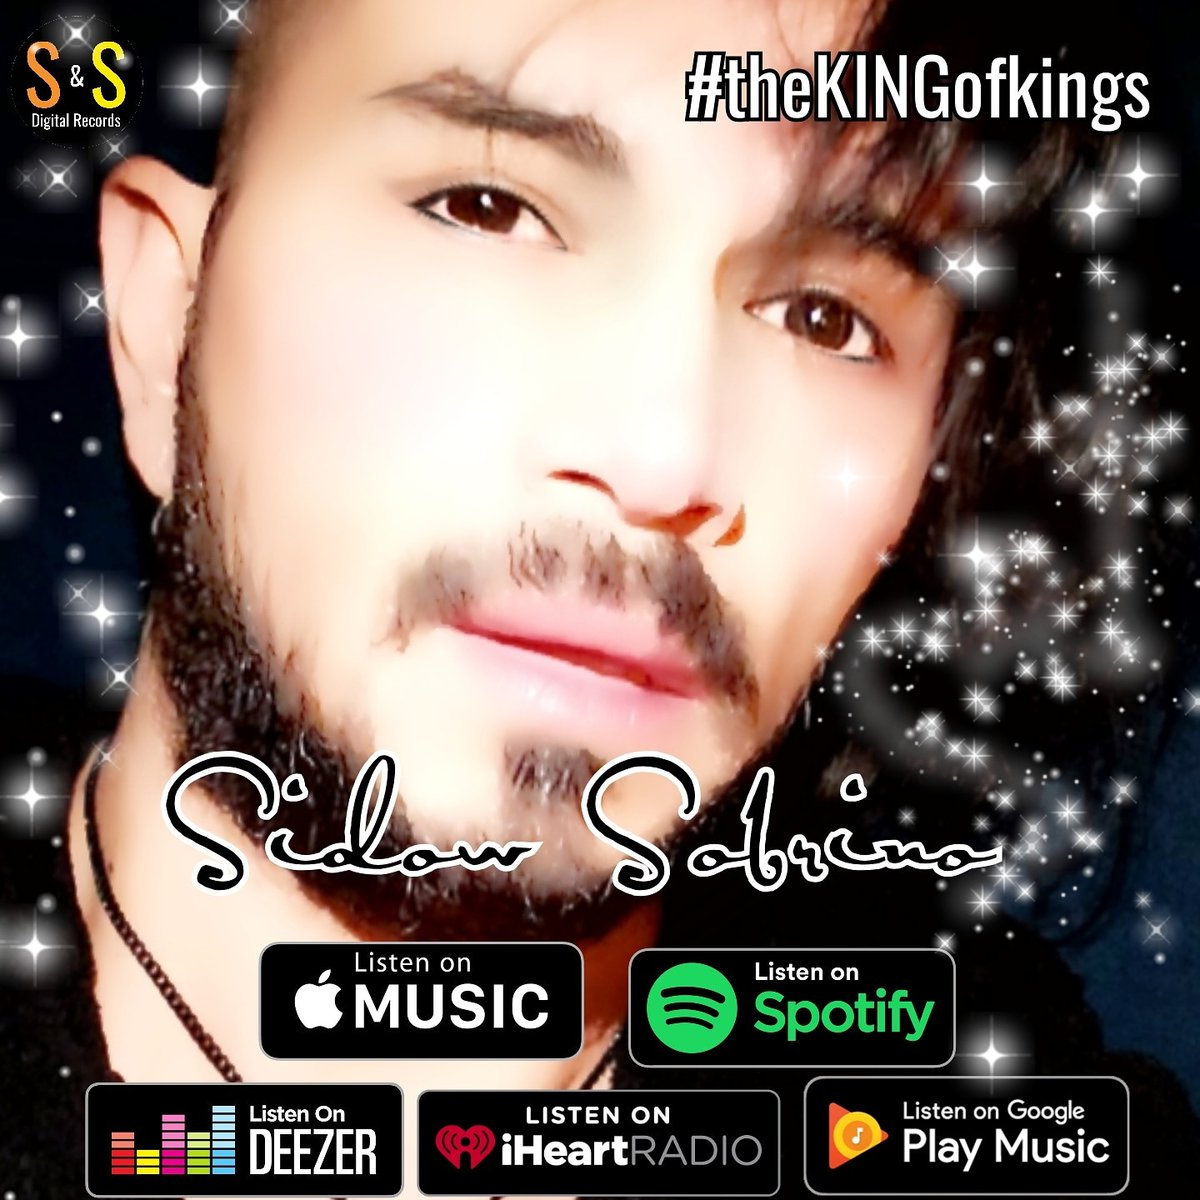 OMG, We can't thank you enough, our songs remain No.1 worldwide, yes, YOU DID This!!! #thekingofkings https://posts.gle/yUBMn #musicsensation #sidowsobrino  #entertainmentnews #happeningnow #london #france #germany #mondaymotivation #outrageous #christianradio #hotcelebs #NYCpic.twitter.com/fp1pqq7YwS